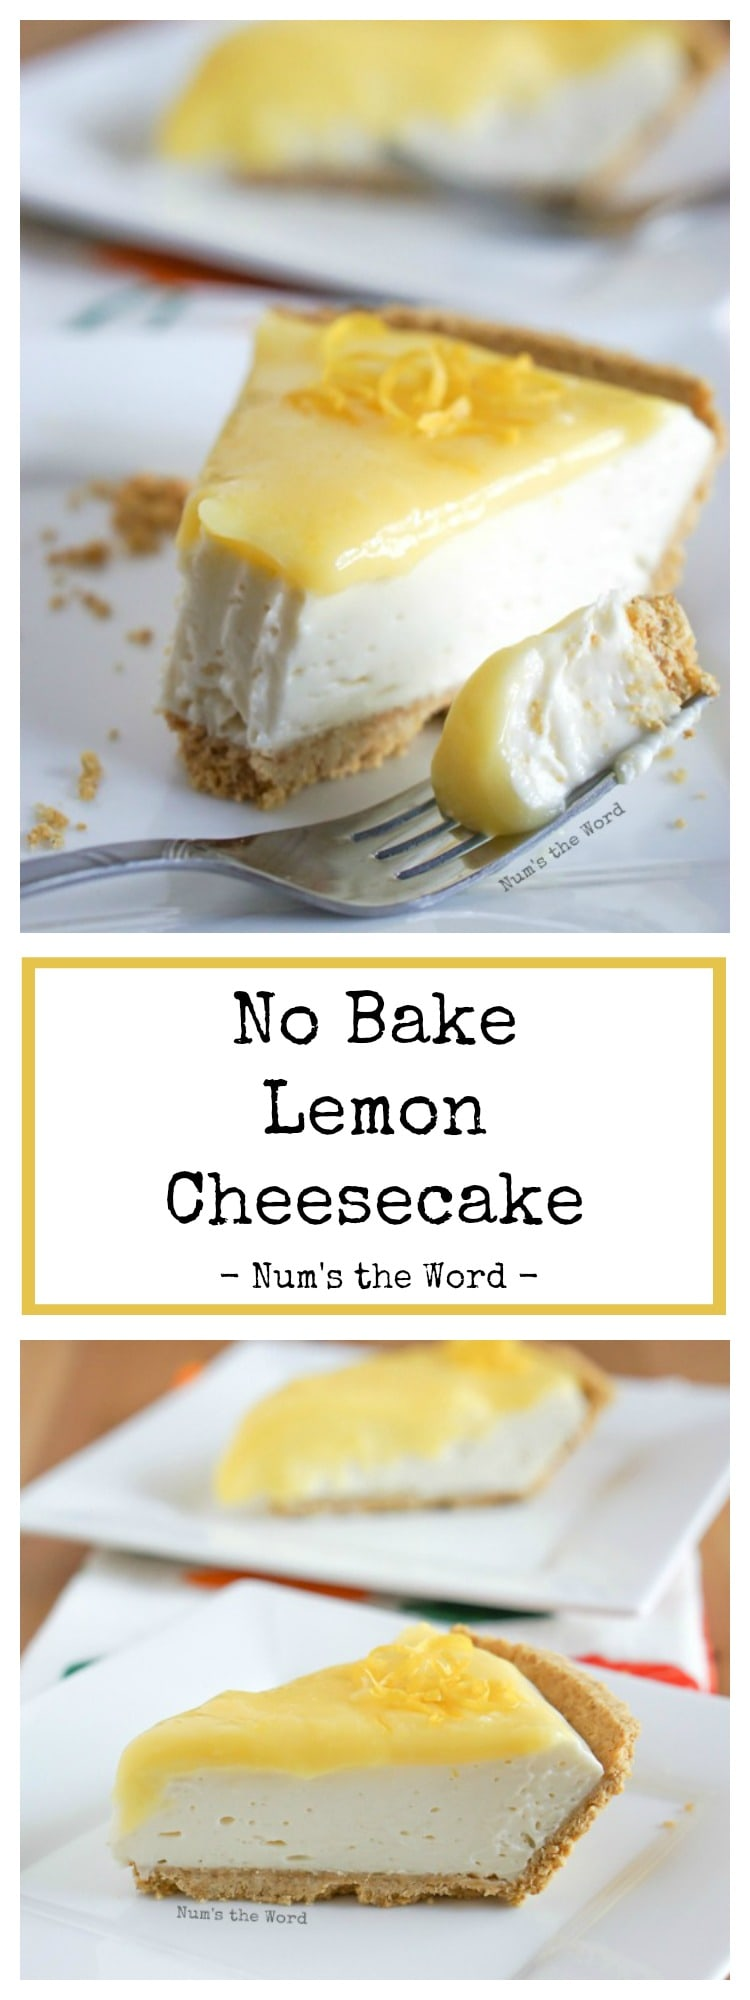 No Bake Lemon Cheesecake - collage of images for Pinterest